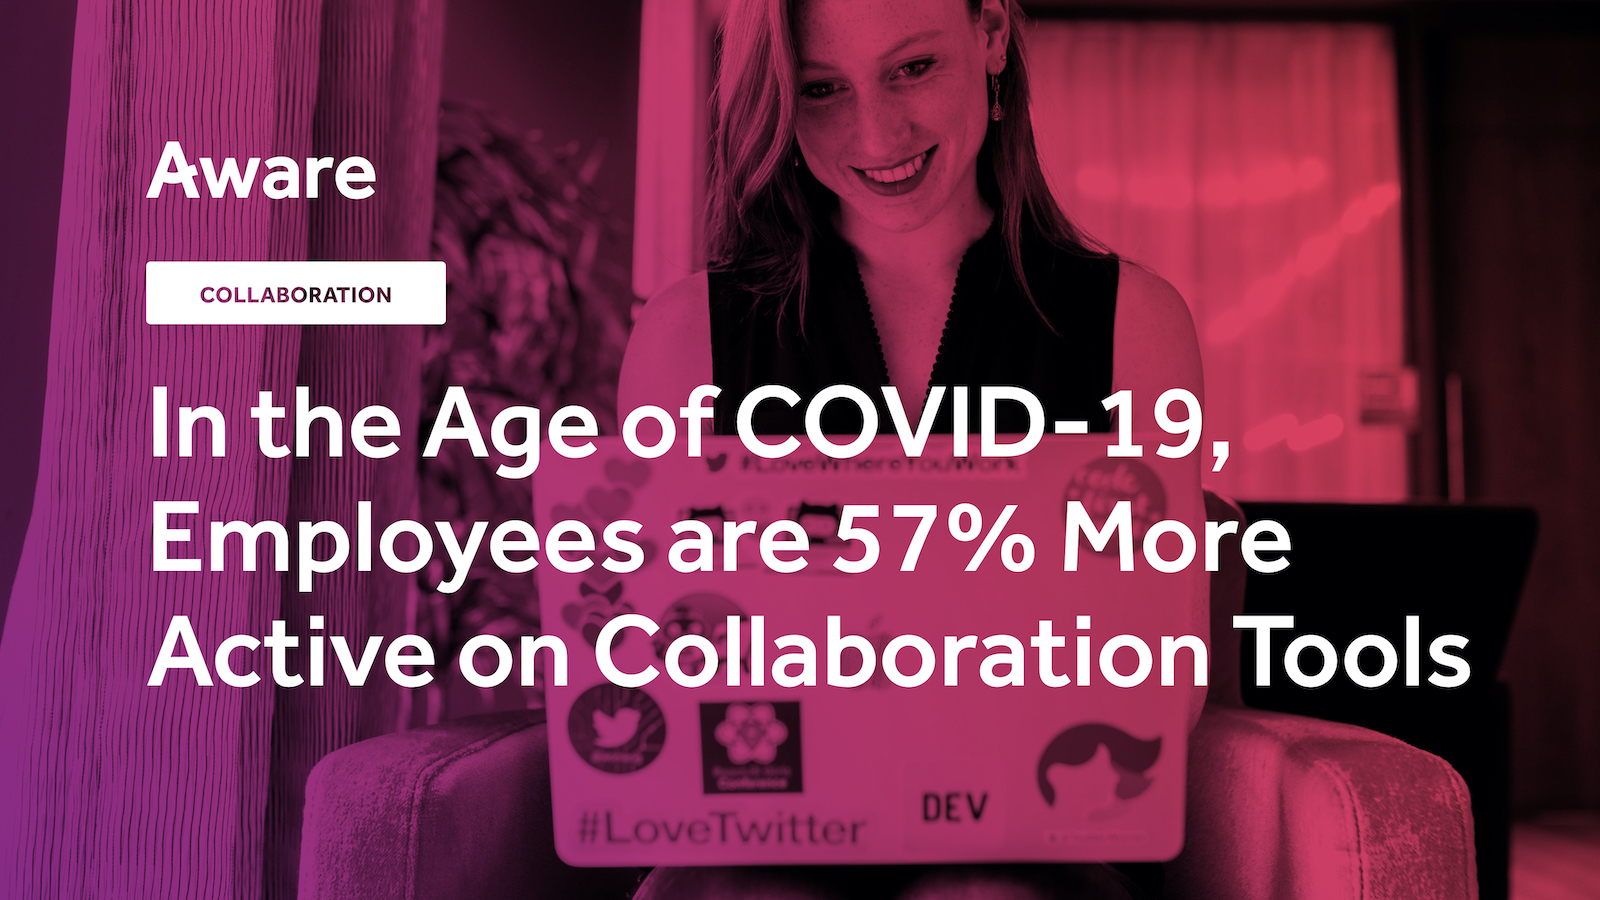 In the Age of COVID-19, Employees are 57% More Active on Collaboration Tools